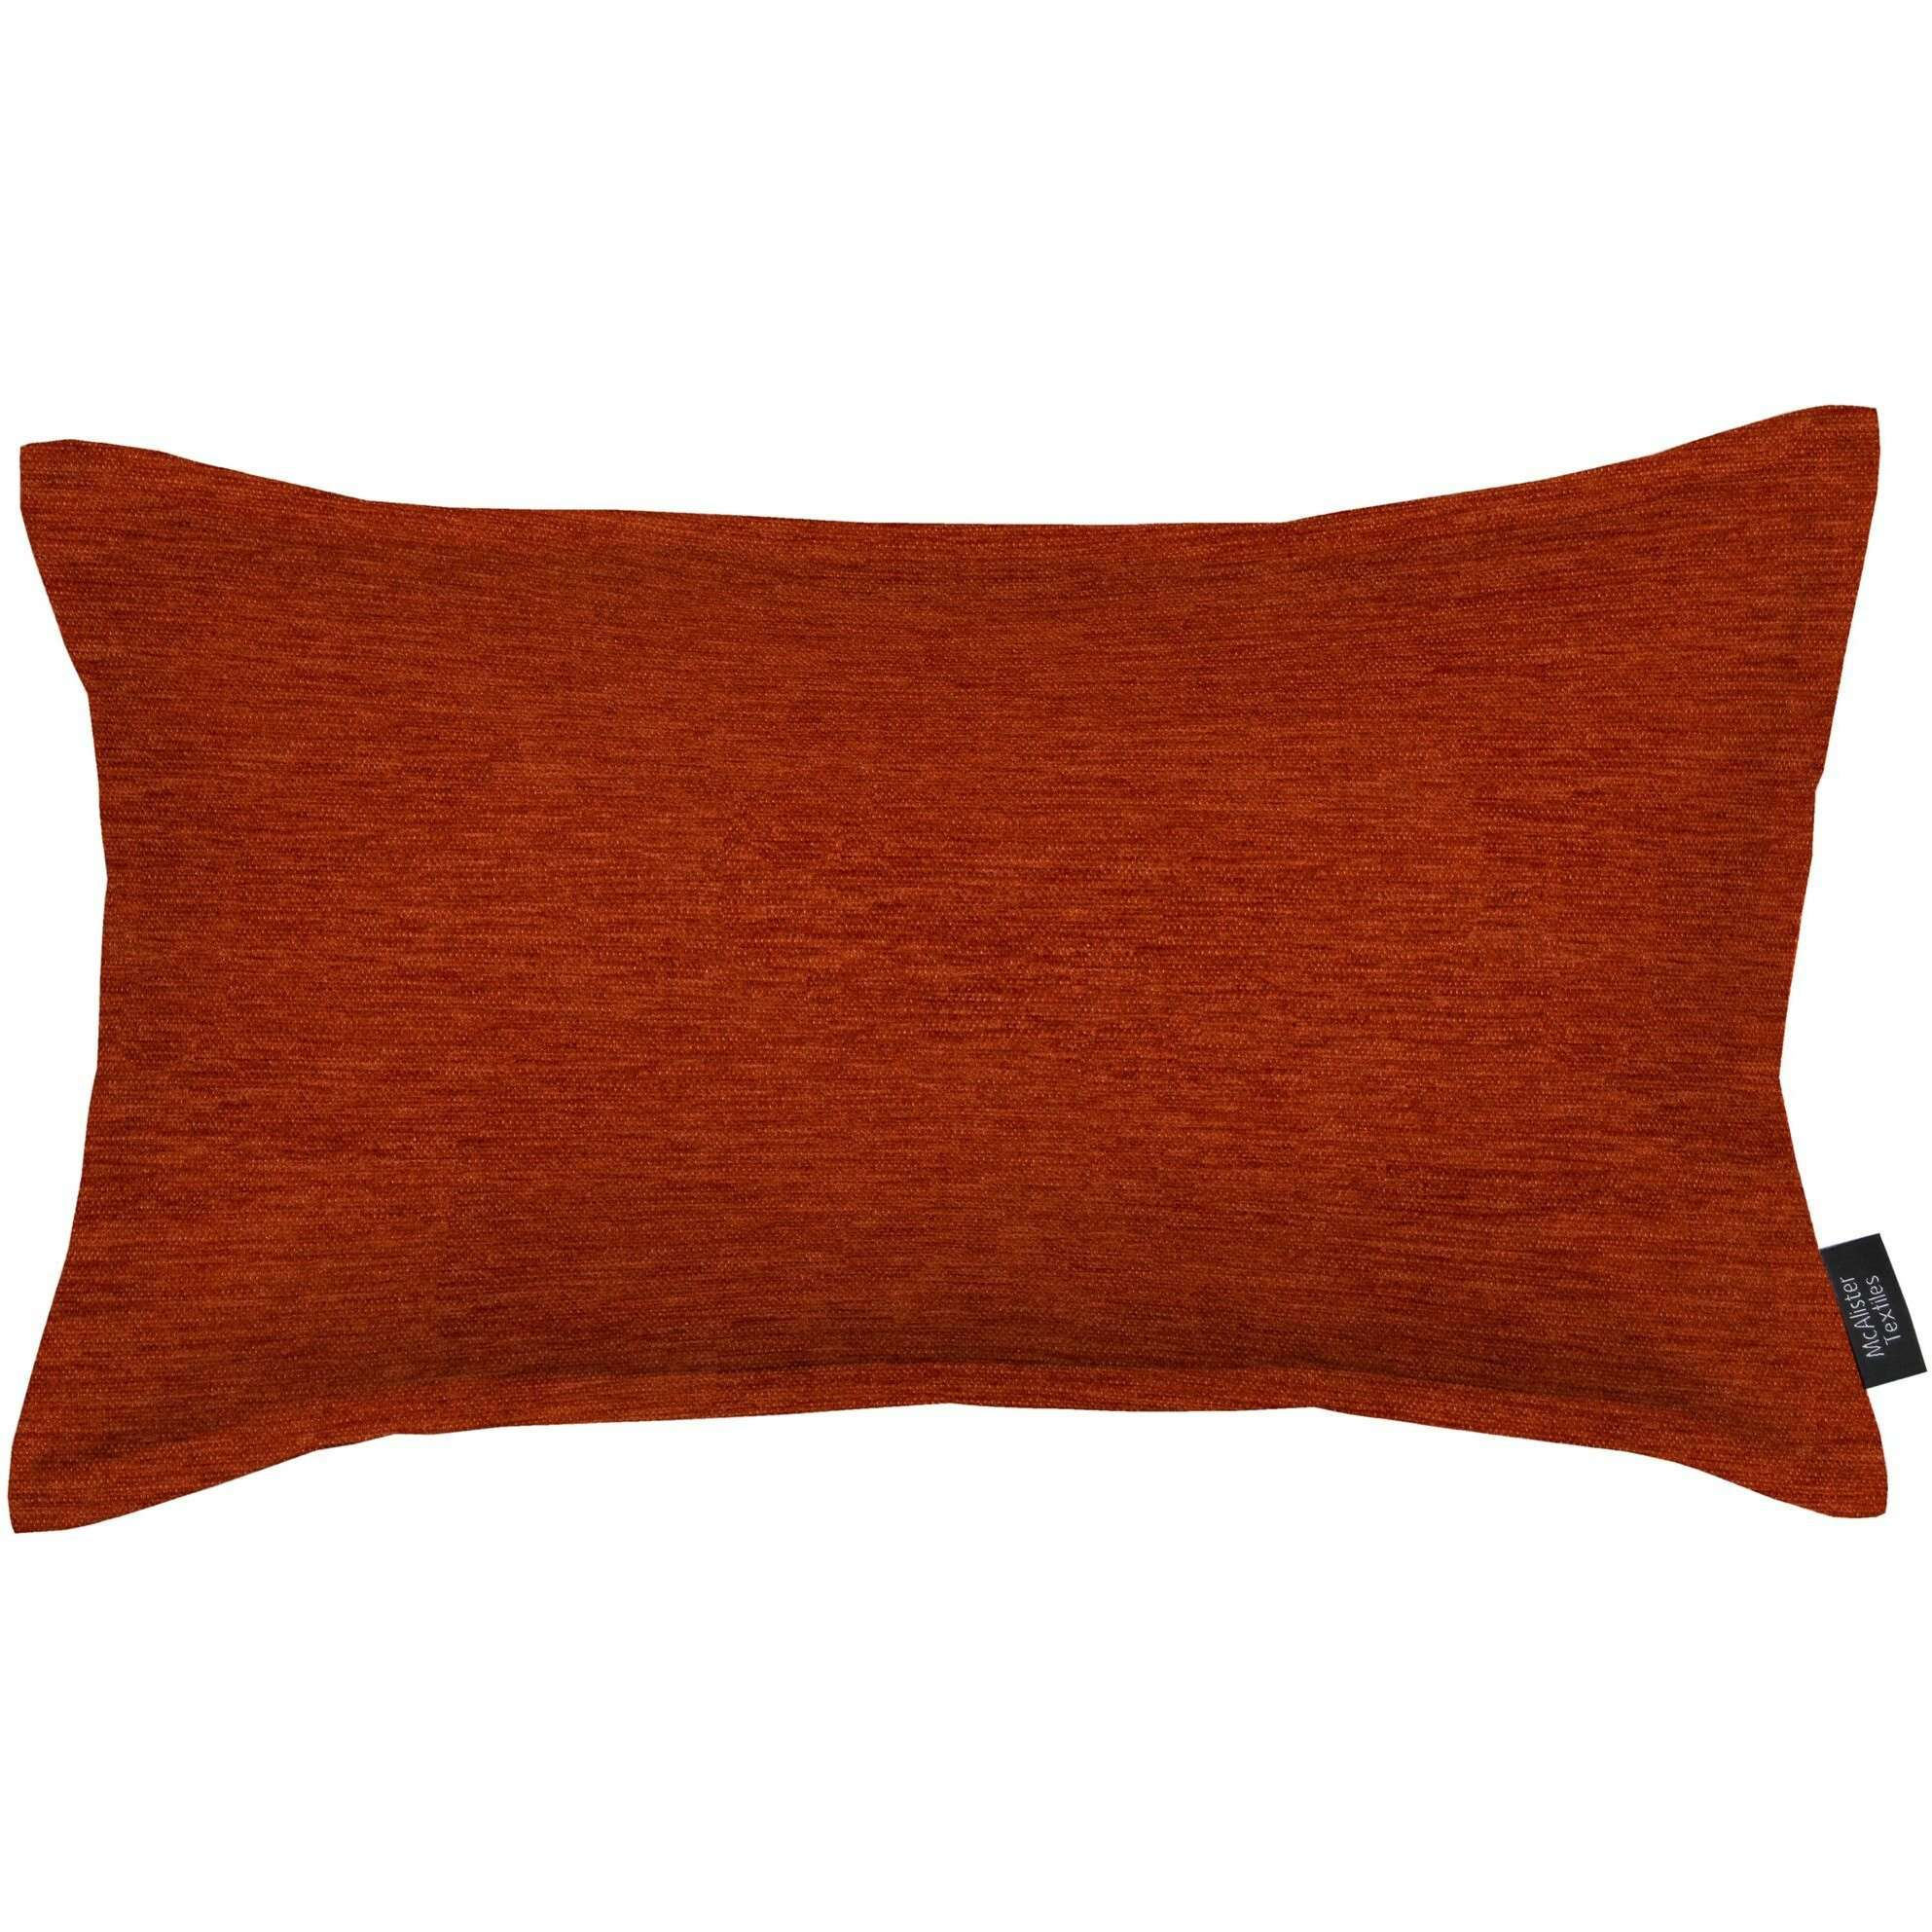 McAlister Textiles Plain Chenille Burnt Orange Cushion Cushions and Covers Polyester Filler 60cm x 40cm